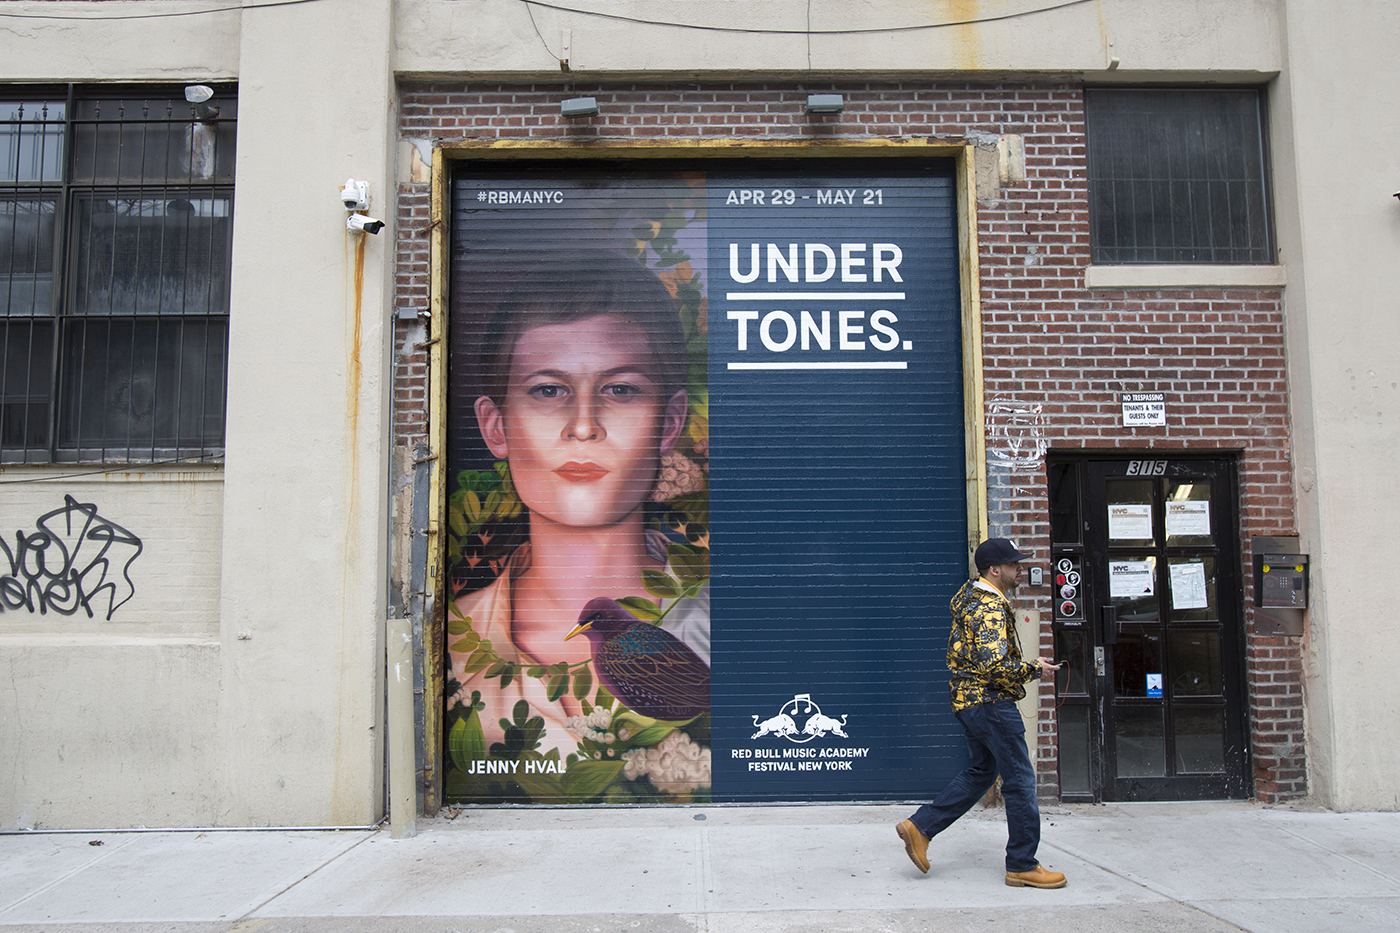 colossal-media-paint-ads-outdoor-advertising-nyc-brooklyn-rbma-red-bull-music-academy-2